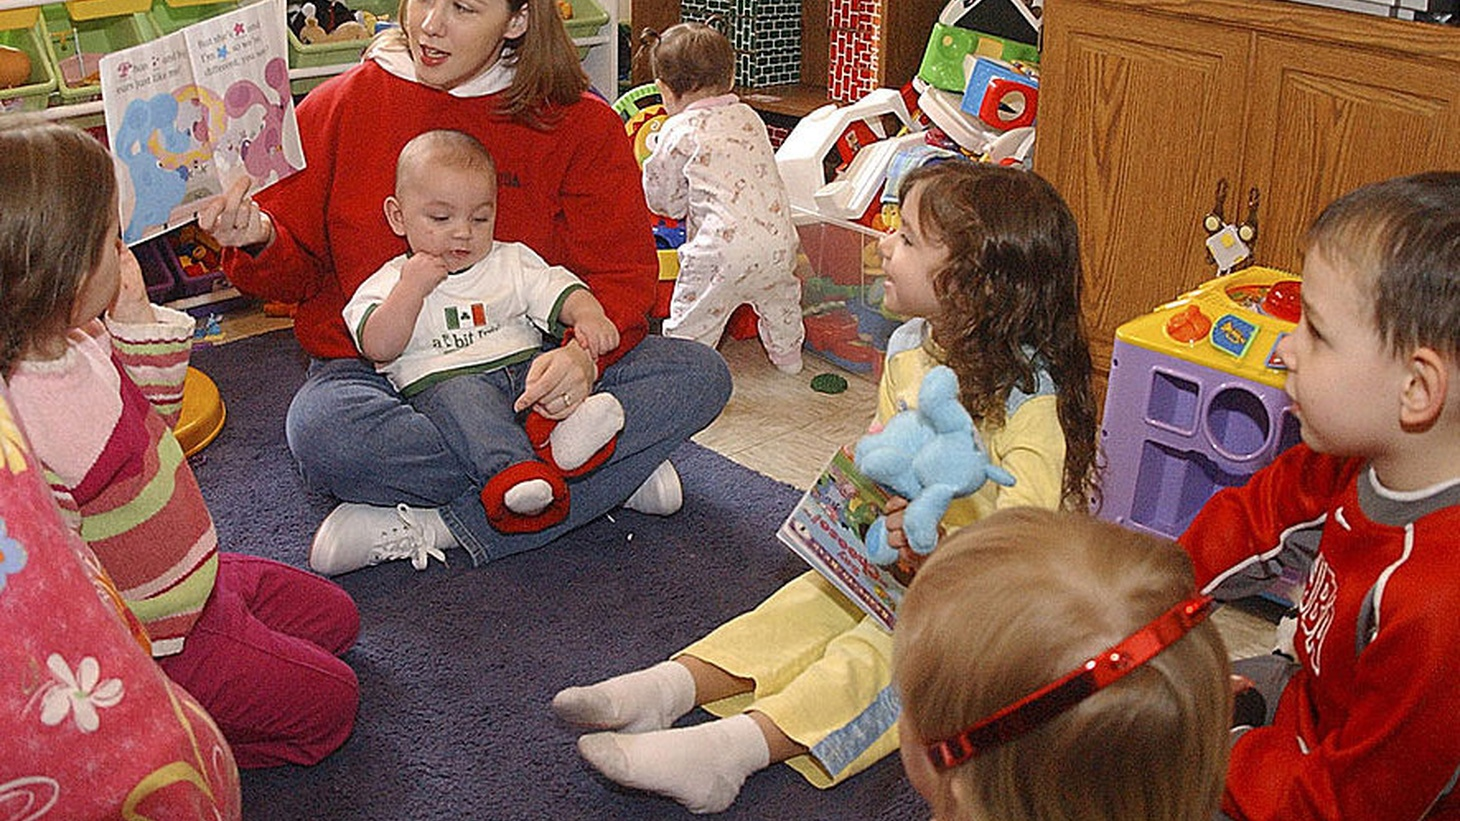 As childcare costs overwhelm young families, more women are staying home, and families are losing financial ground. Has the time come for federally funded daycare? Should employers step up with paid leave, flexible work hours, on-site preschool?